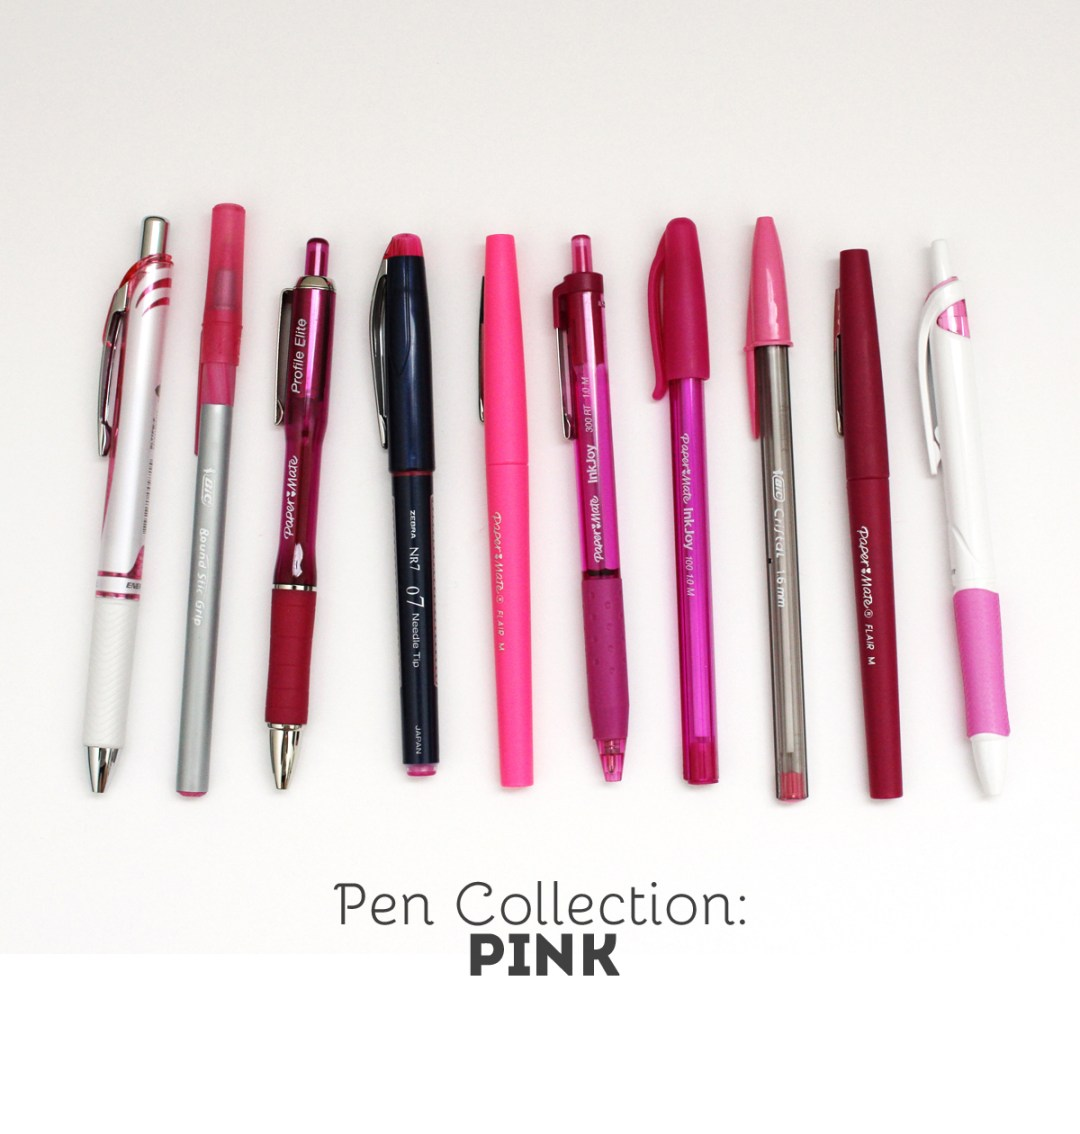 Pen Collection and Swatches - www.randomolive.com